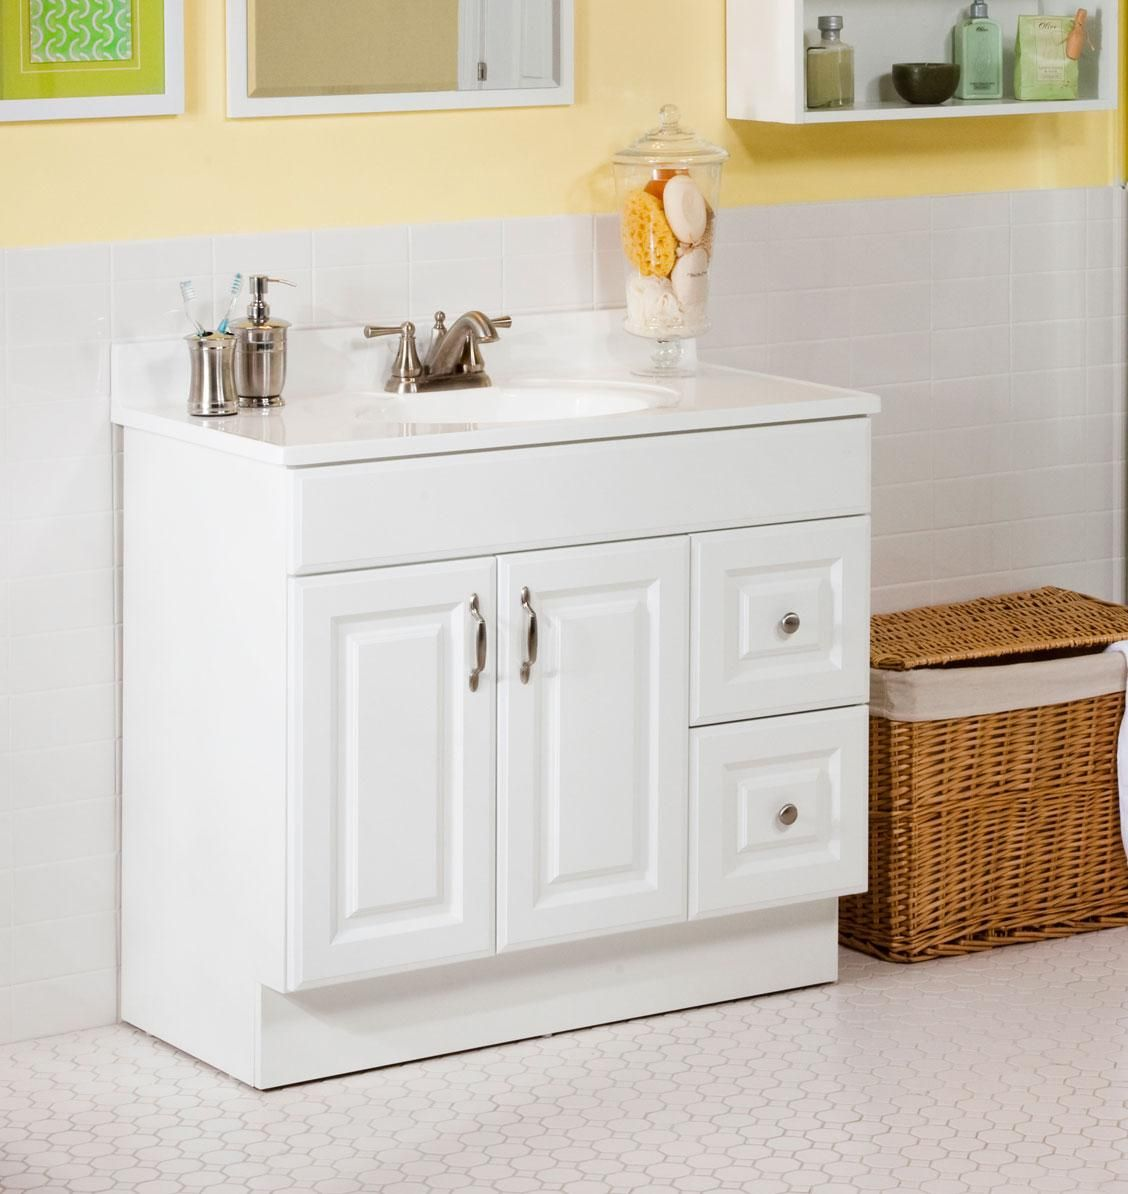 Modest, cute bathroom vanity. No gap between vanity and floor. | Our ...